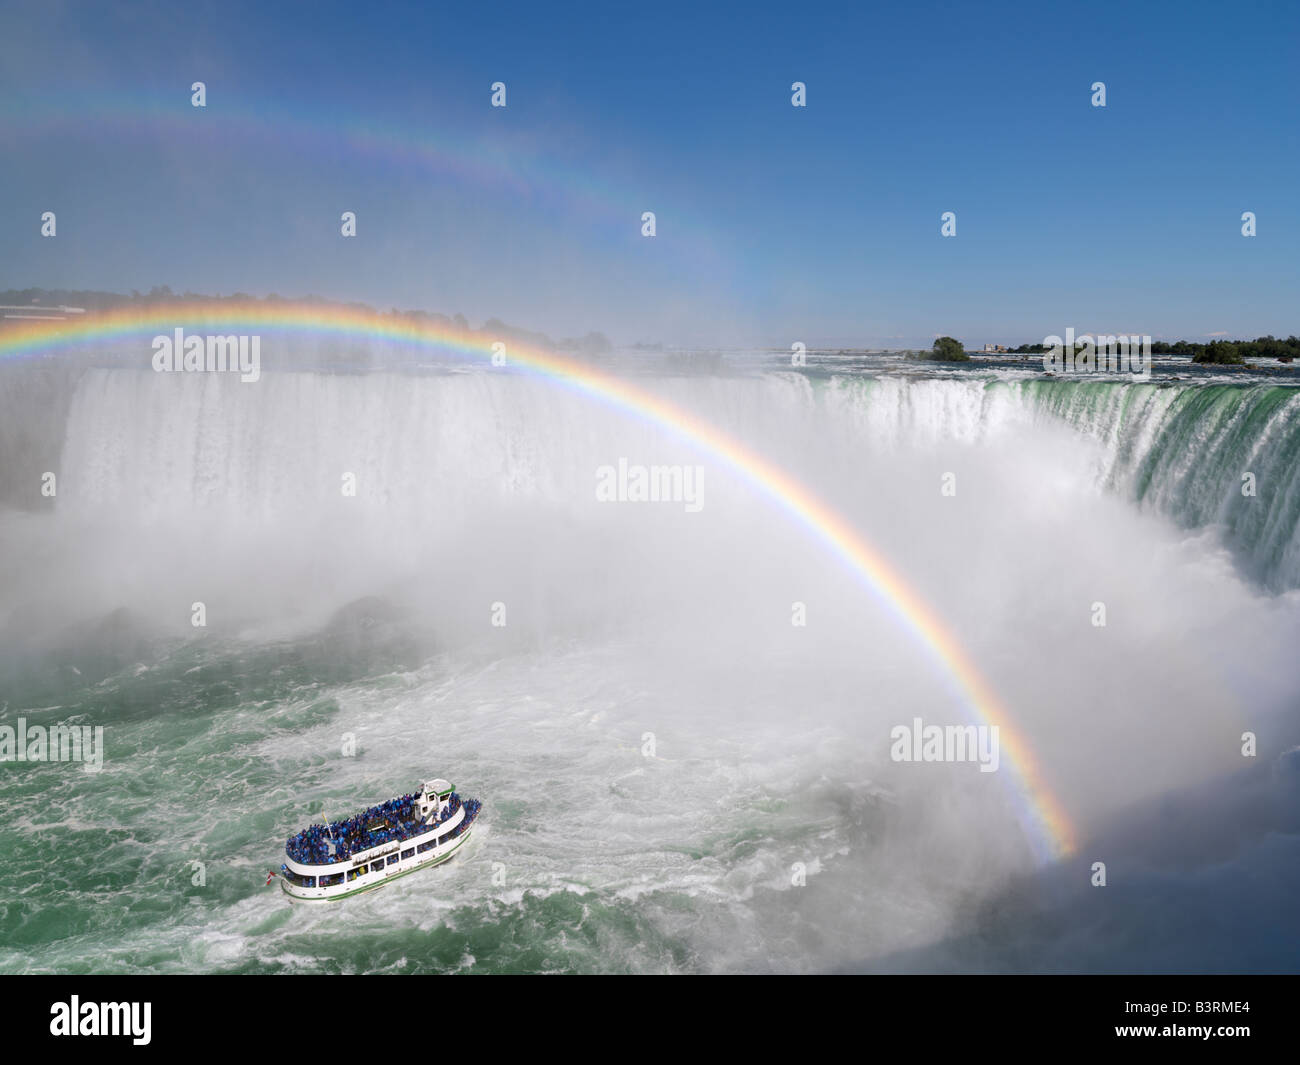 Canada,Ontario,Niagara Falls,Maid of the Mist tour boat approaching the Canadian Falls with a double rainbow - Stock Image